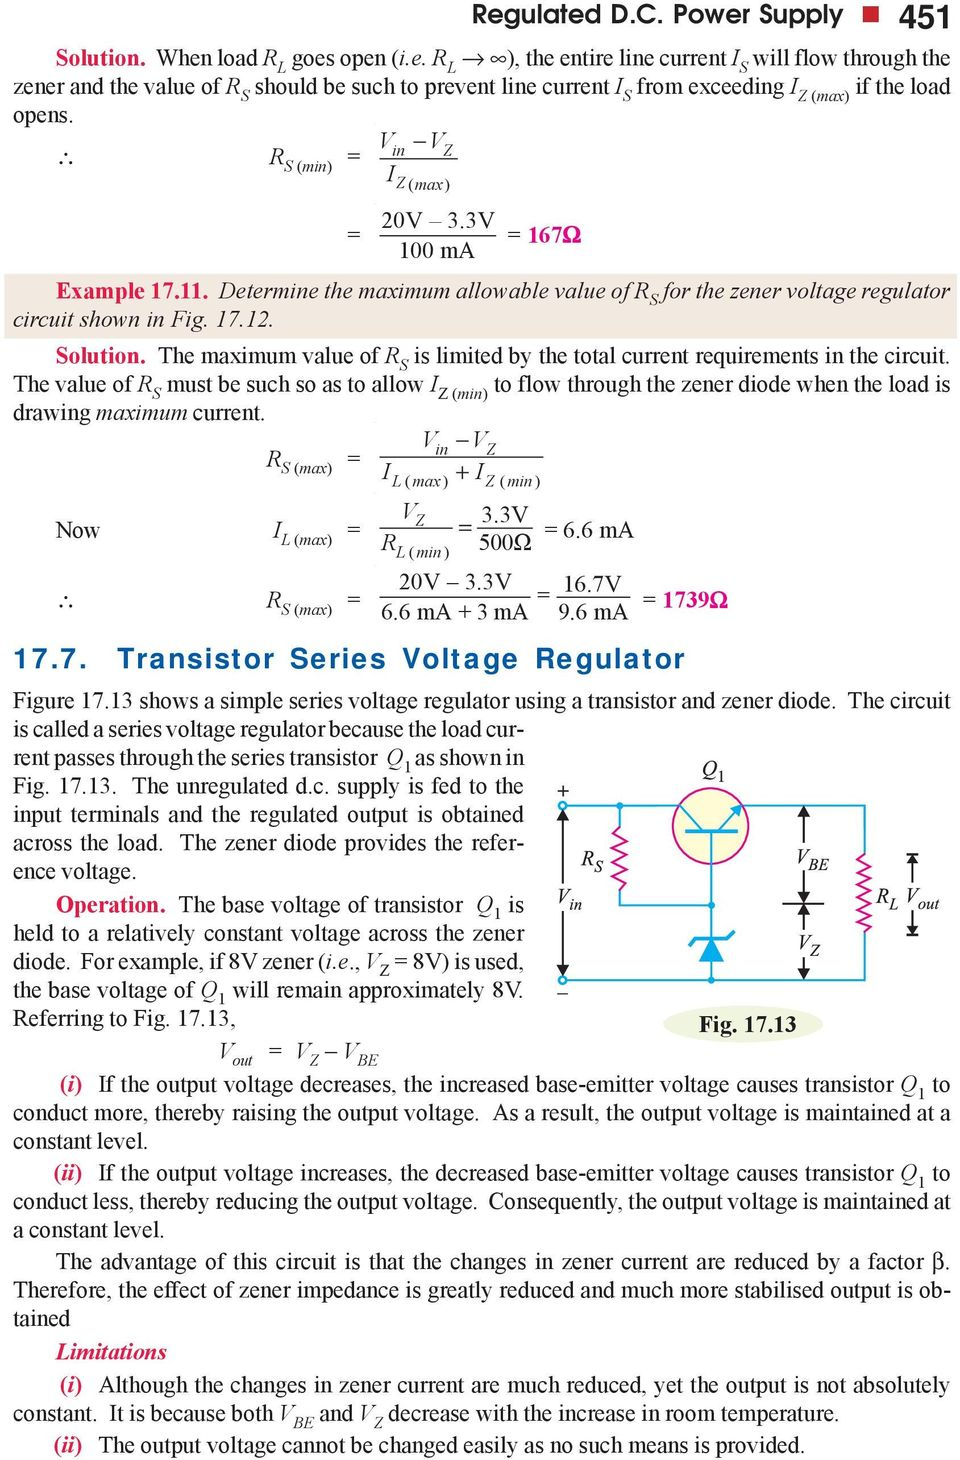 Regulated Dc Power Supply Pdf 3a Adjustable Regulator Using Lm350 Electronic Circuits And The Maximum Value Of R S Is Limited By Total Current Requirements In Circuit